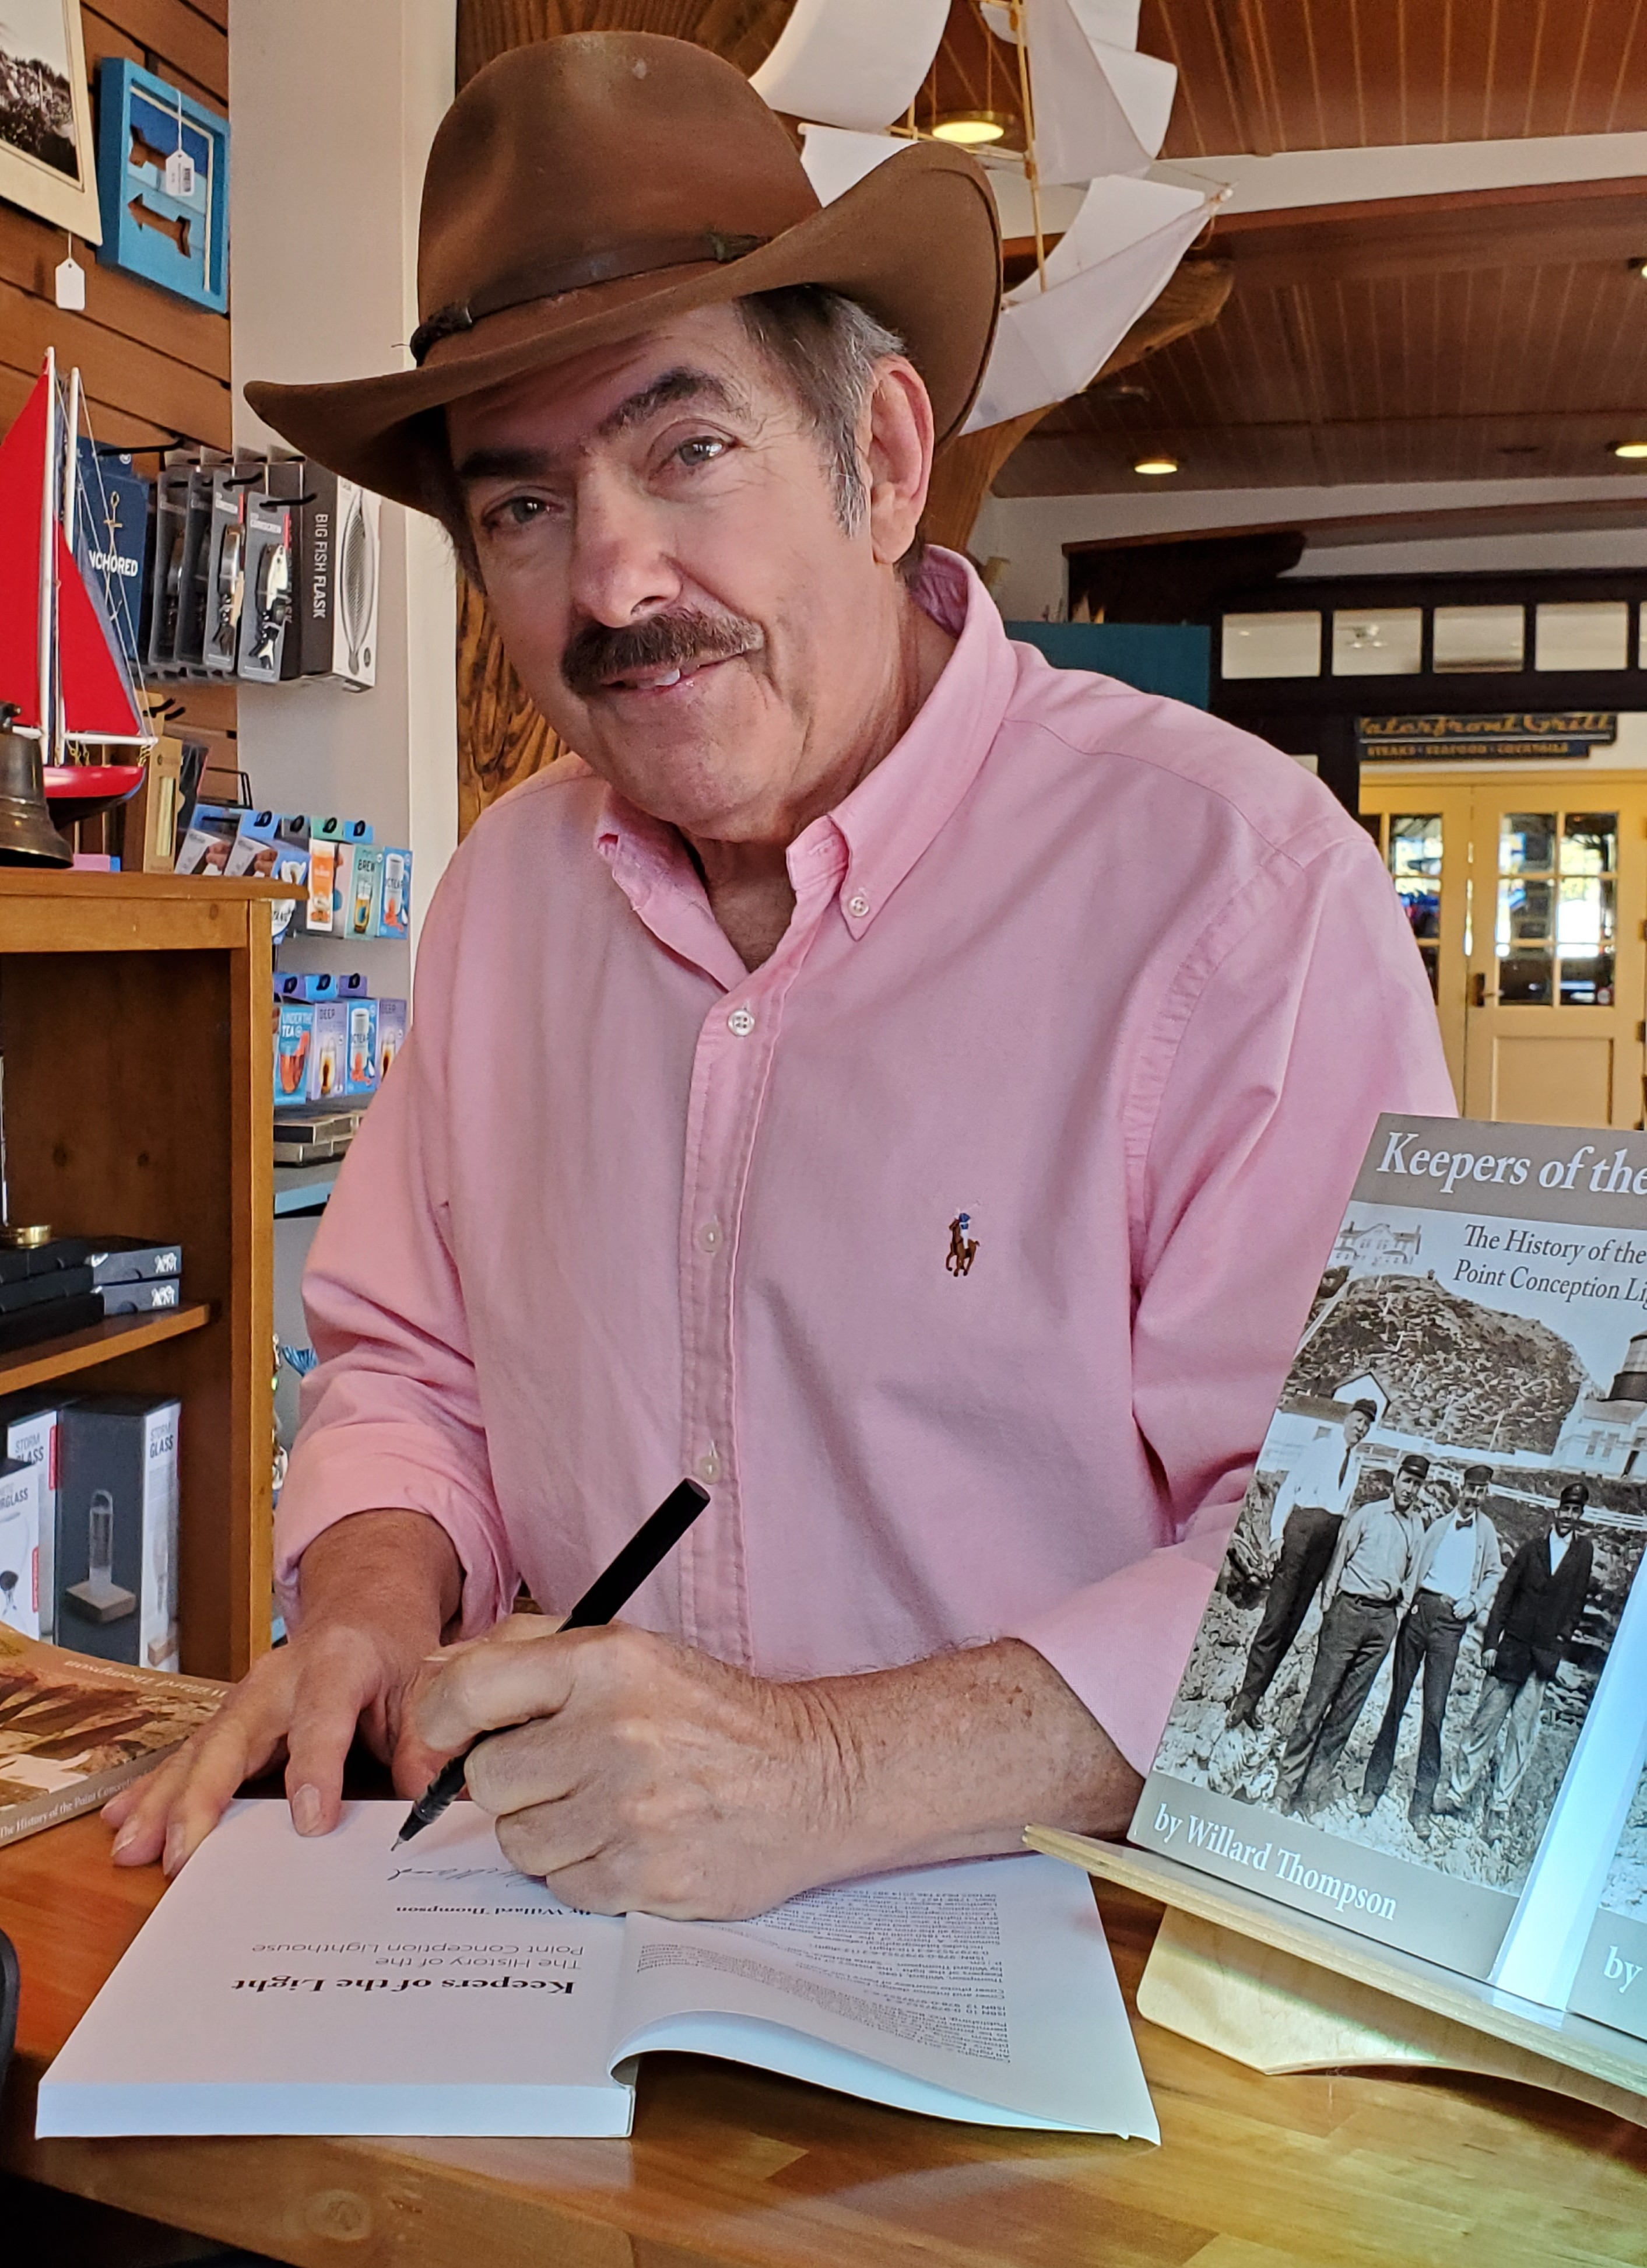 Keepers of the Light: The History of the Point Conception Lighthouse Reading and discussion with local author, Willard Thompson  title=